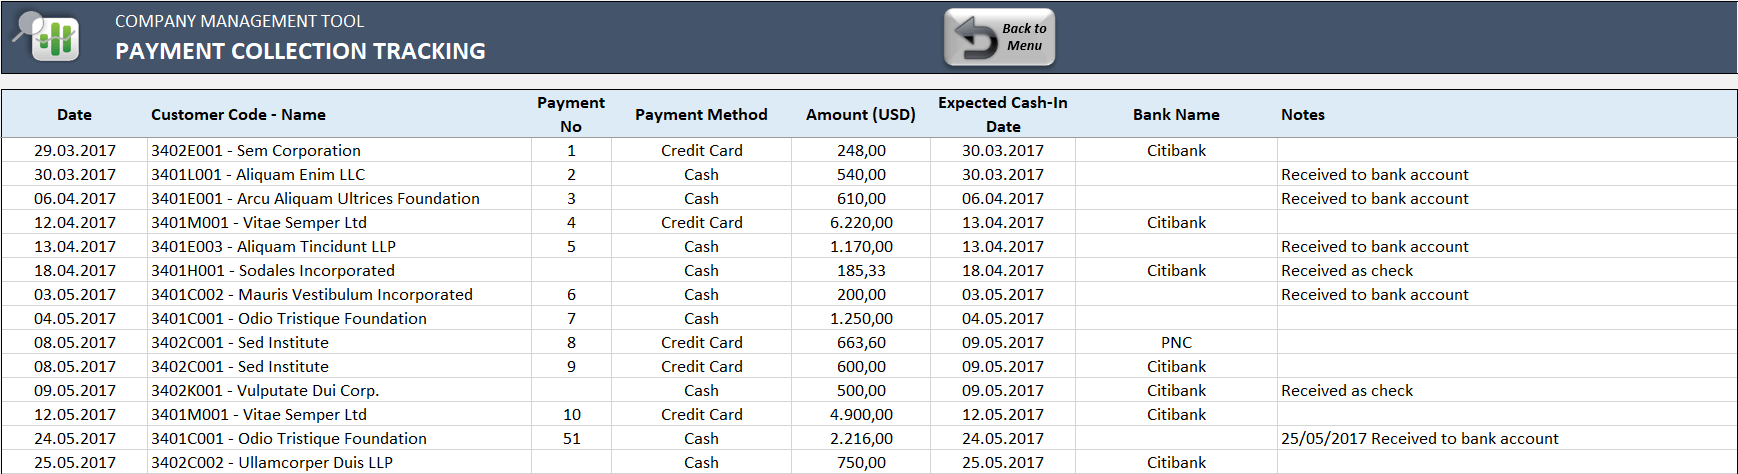 Payment Collection Tracking-13